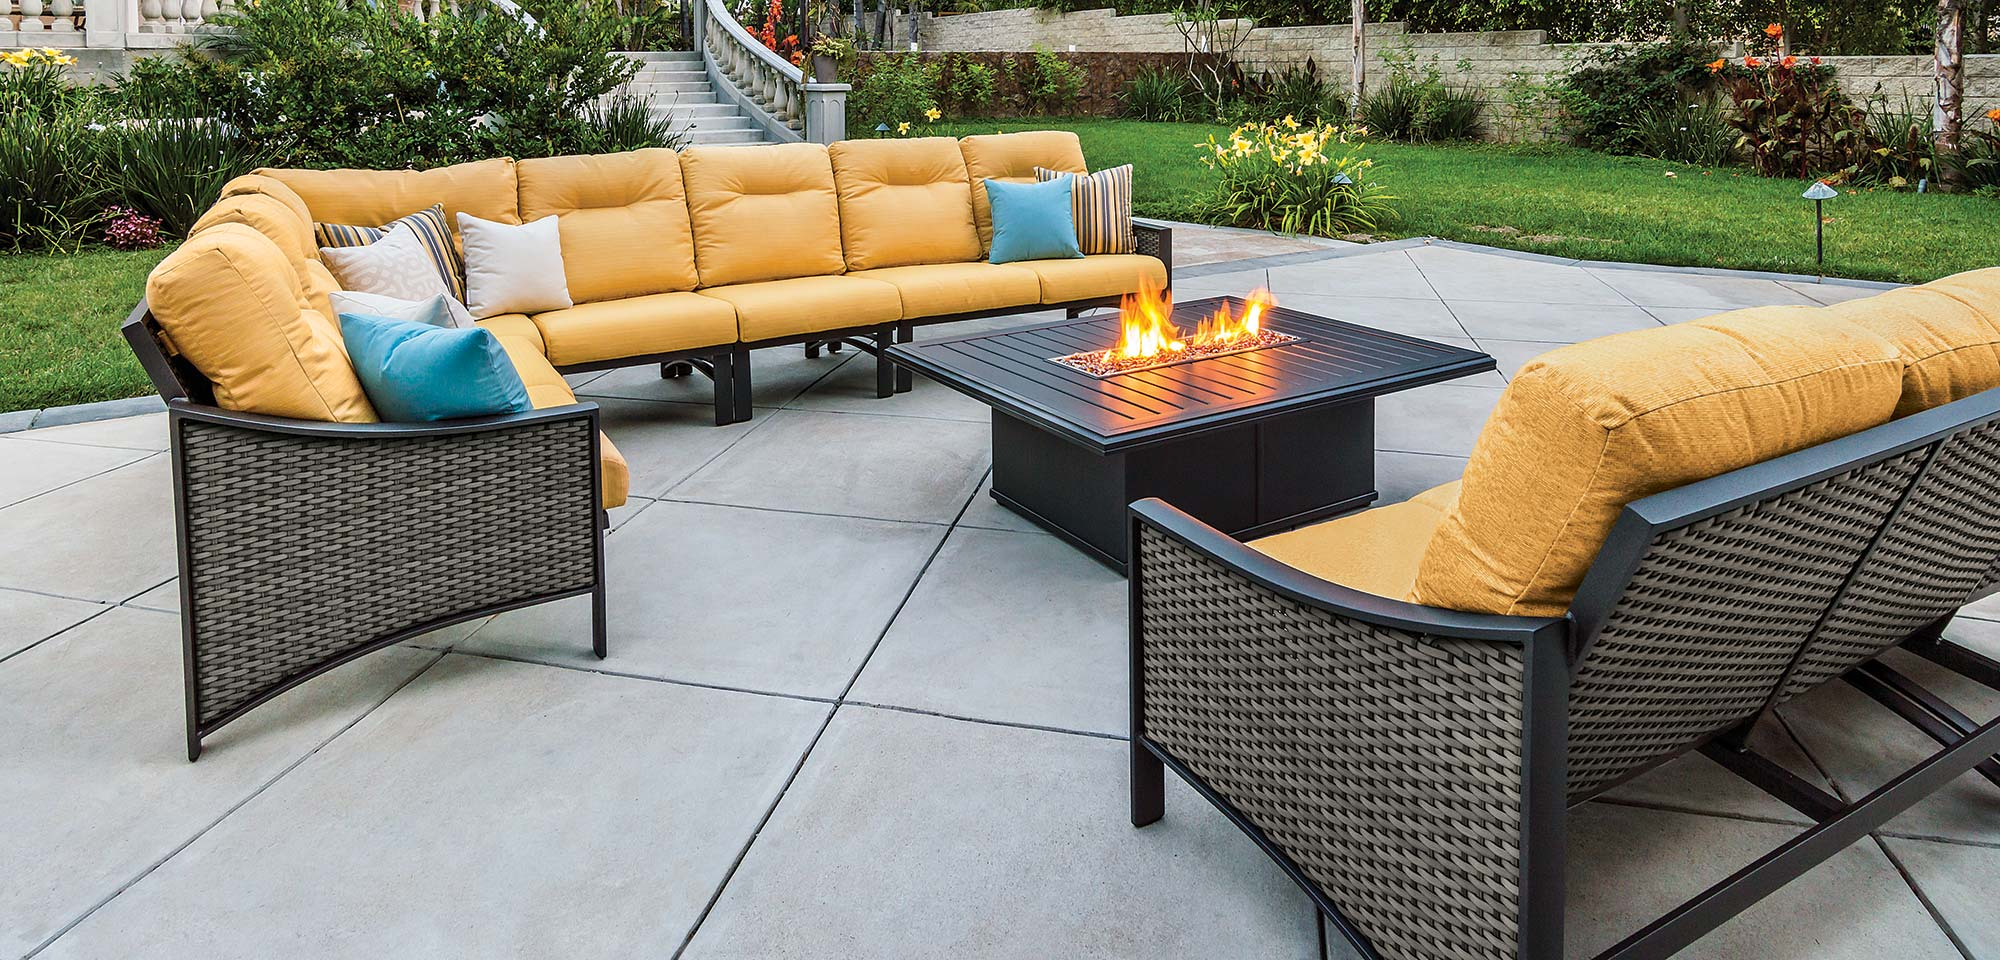 Patio furniture outdoor patio furniture sets for At home patio furniture